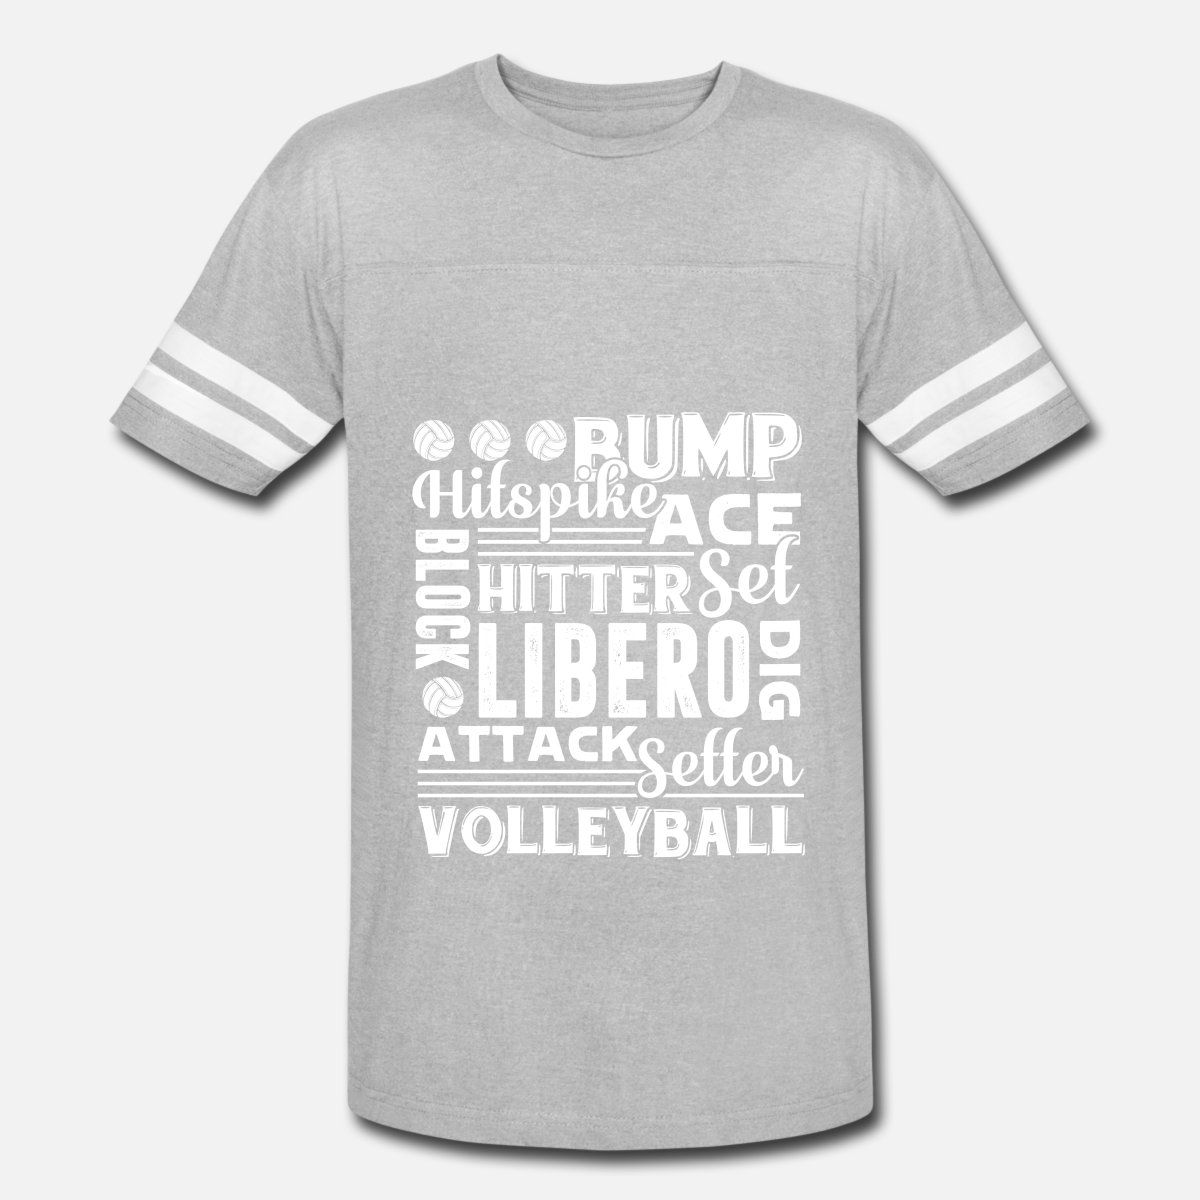 266938ab9 Volleyball Shirt Designs And Sayings – EDGE Engineering and ...